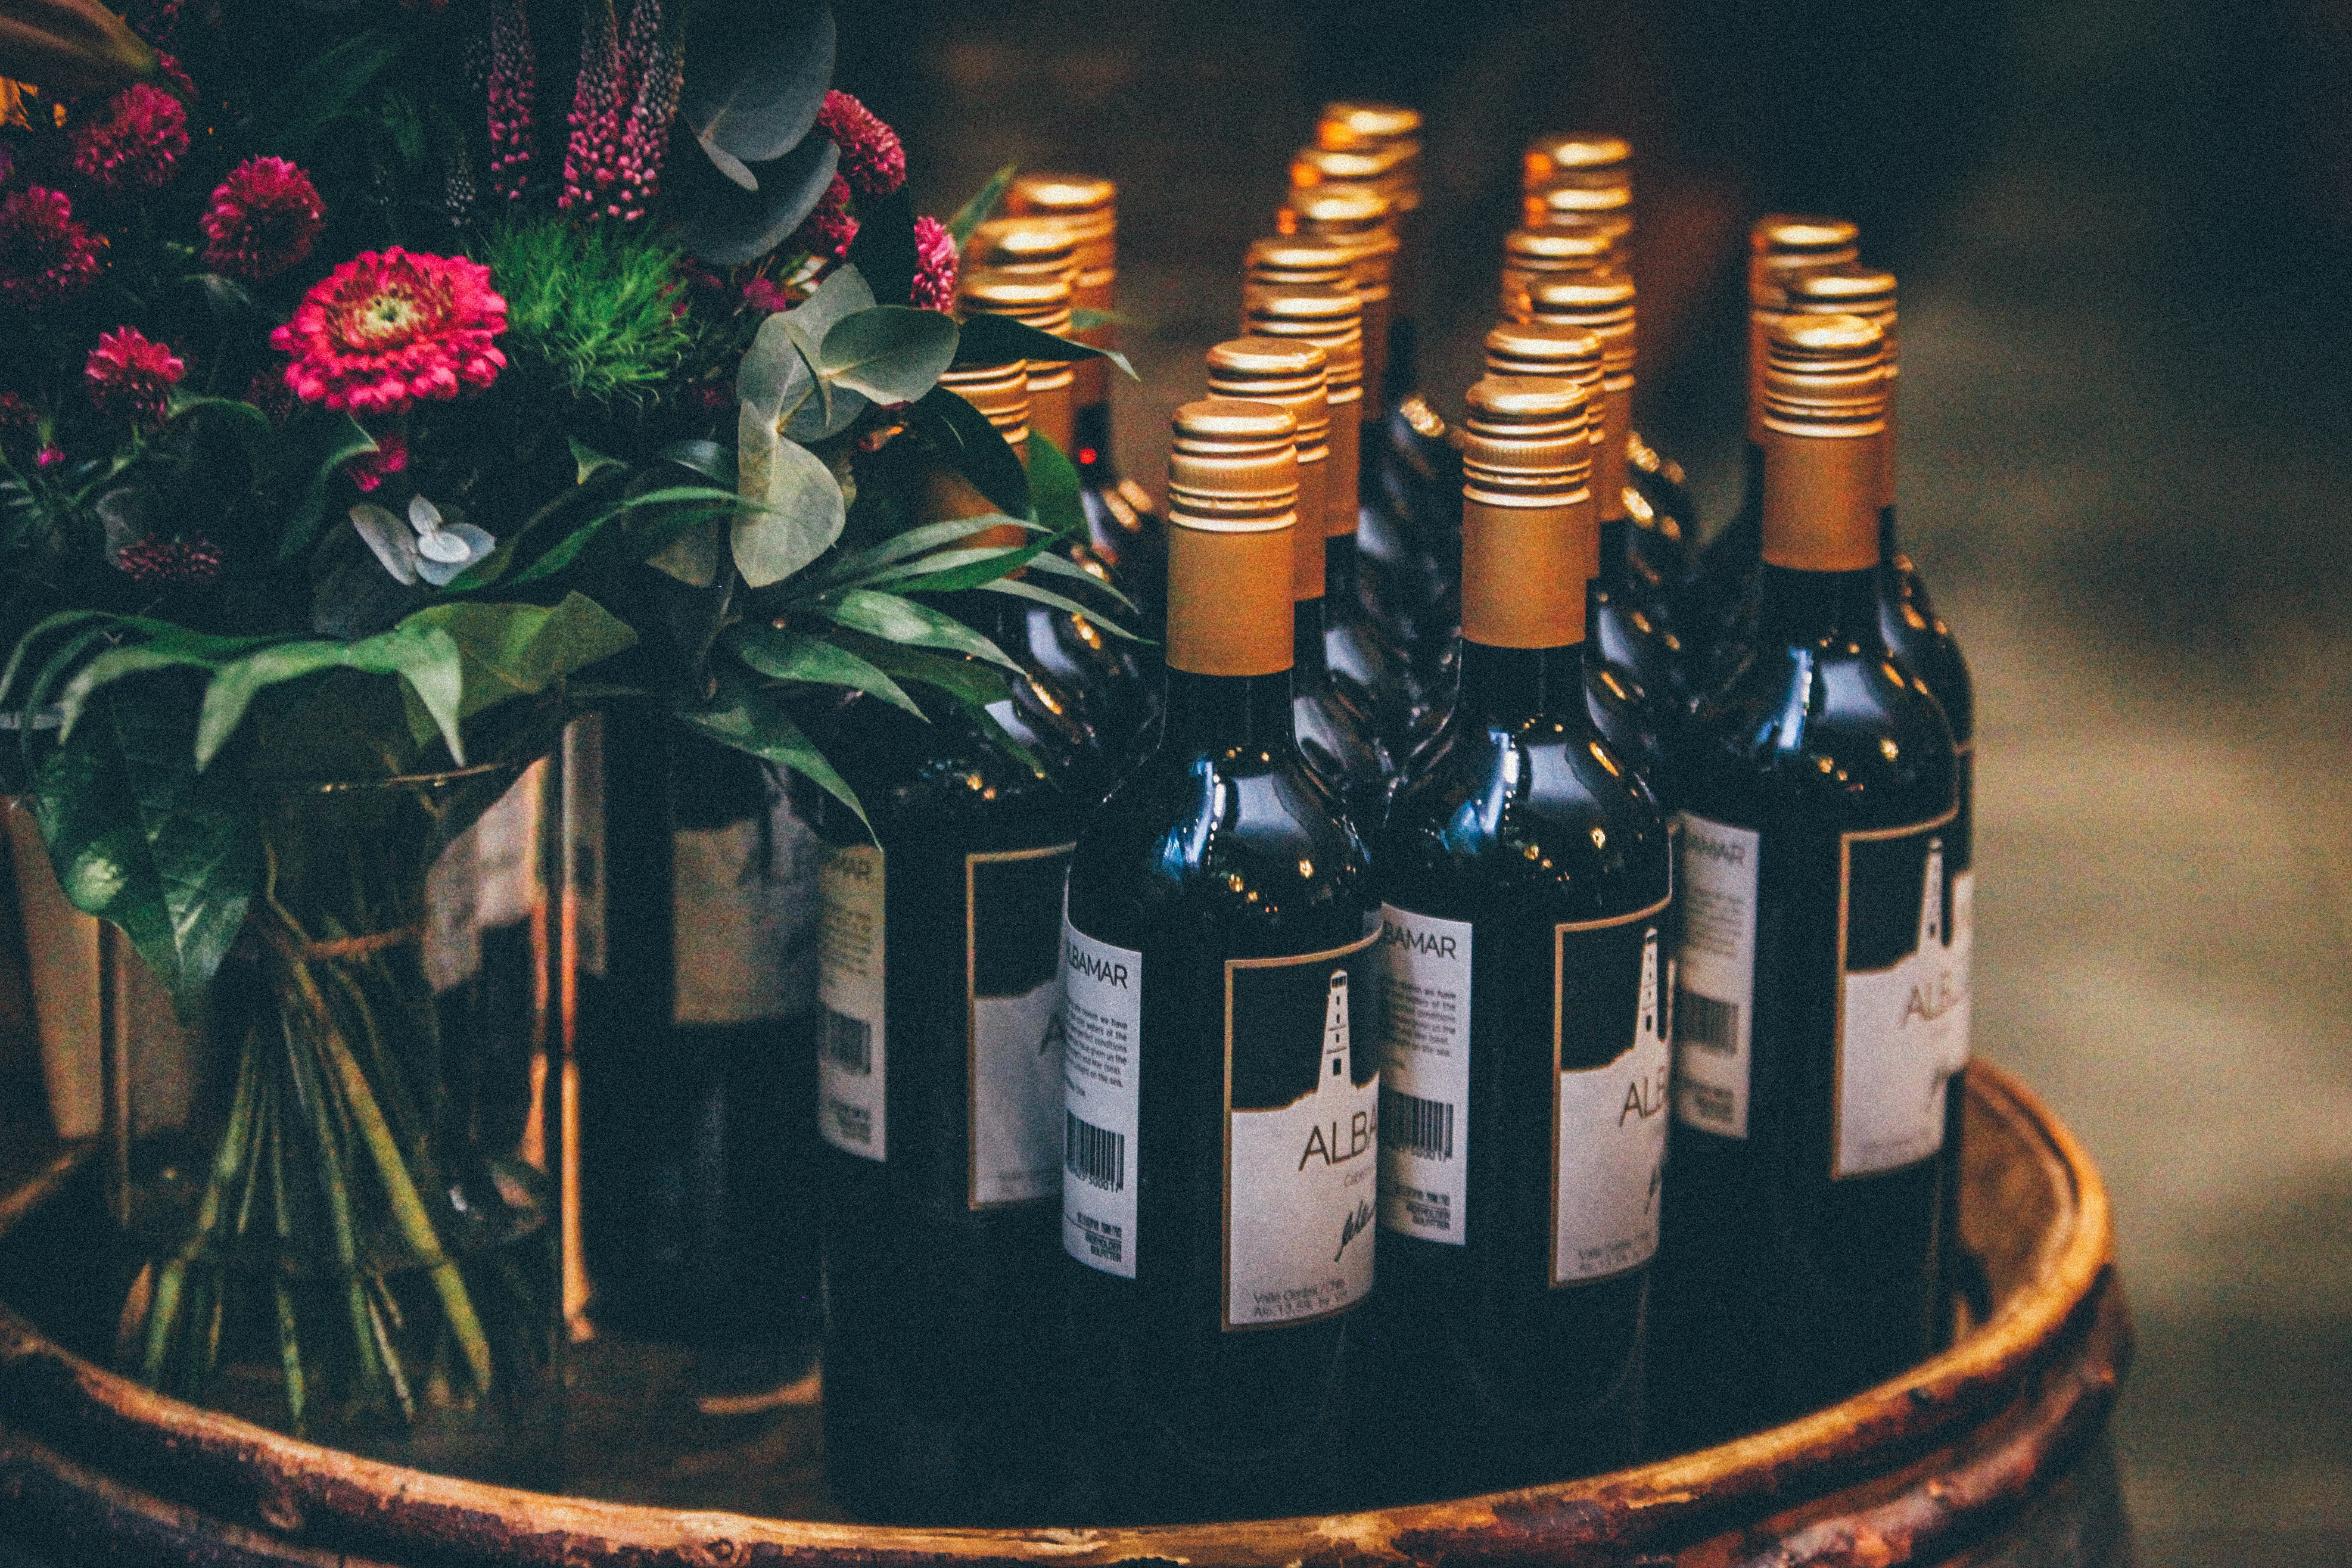 A group of red wine bottles next to a bouquet of roses.